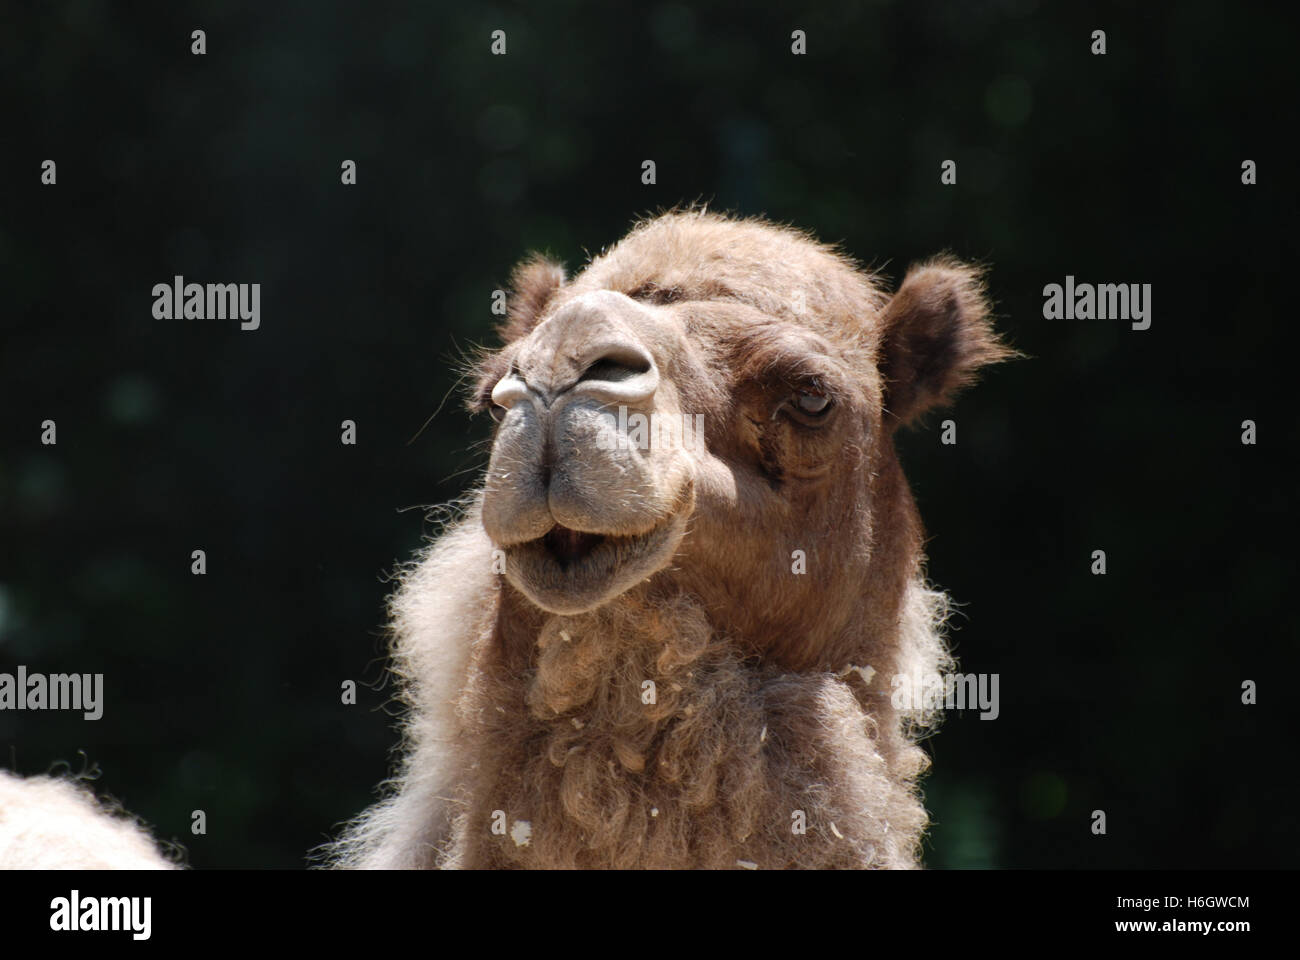 Thick fur on a shaggy camel. - Stock Image